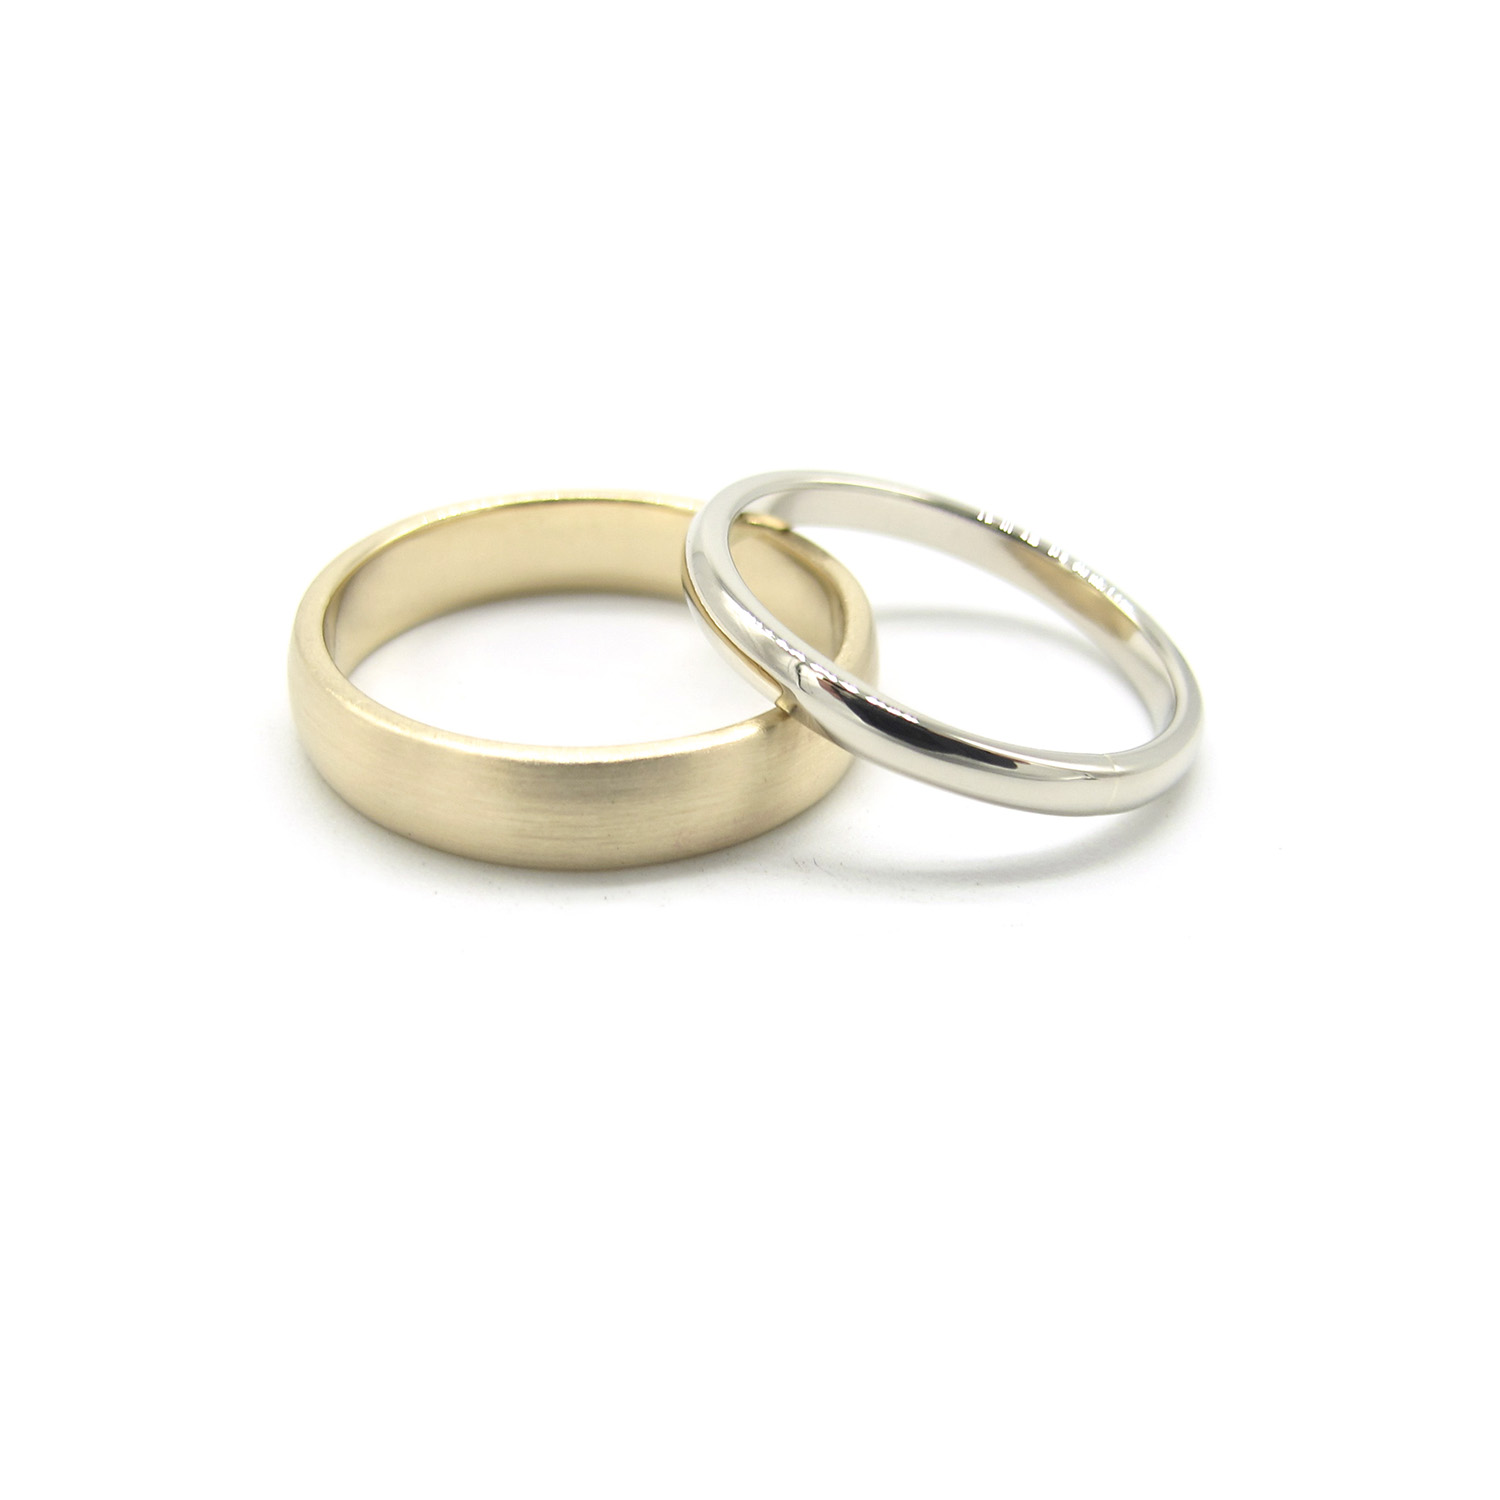 Wedding bands in 14k gold and 18k white gold.